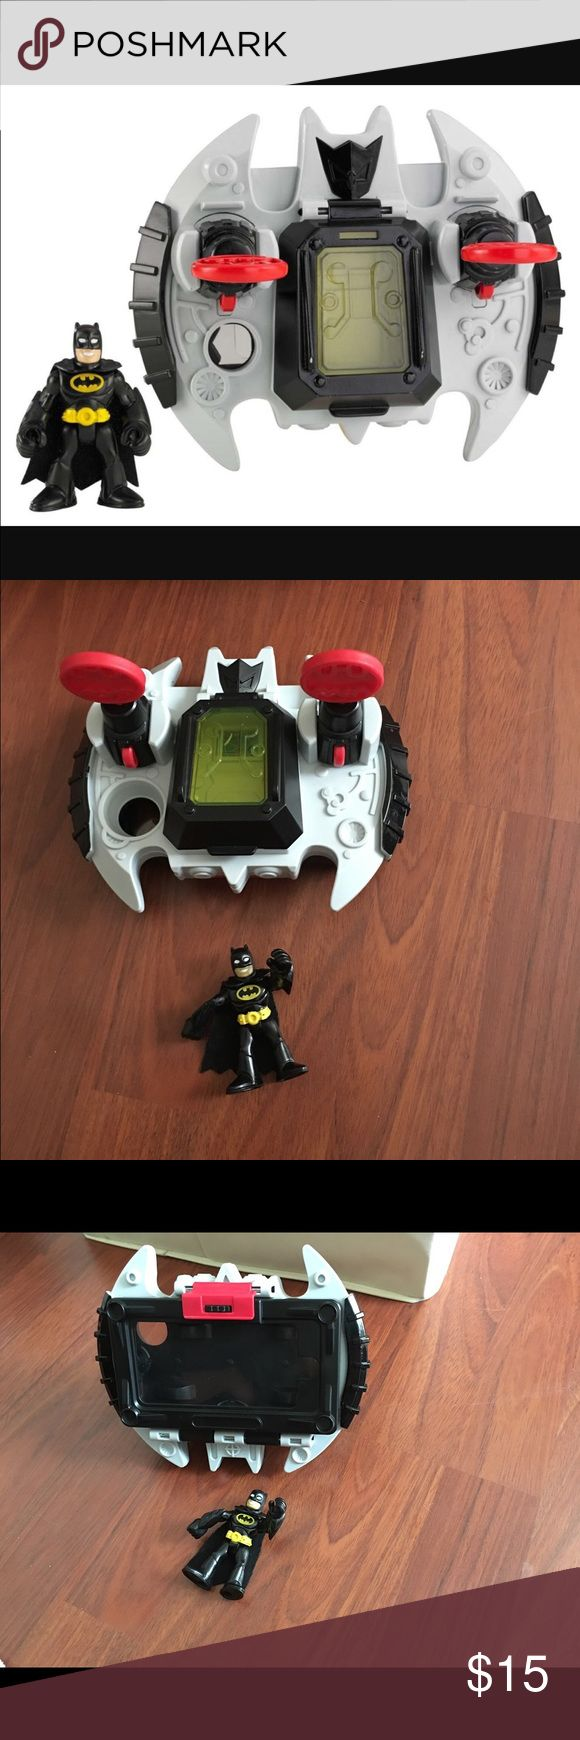 Batwing iPhone case Compatible with iPhone 3G/3GS, iPhone 4/4S, iPhone 5 and iPod touch 2nd, 3rd, 4th & 5th generation (device In flight mode, open & close the cockpit to put Batman figure inside and push buttons to fire projectile launchers Works with any app including the FREE Fisher-Price Imaginext Batcave app Other